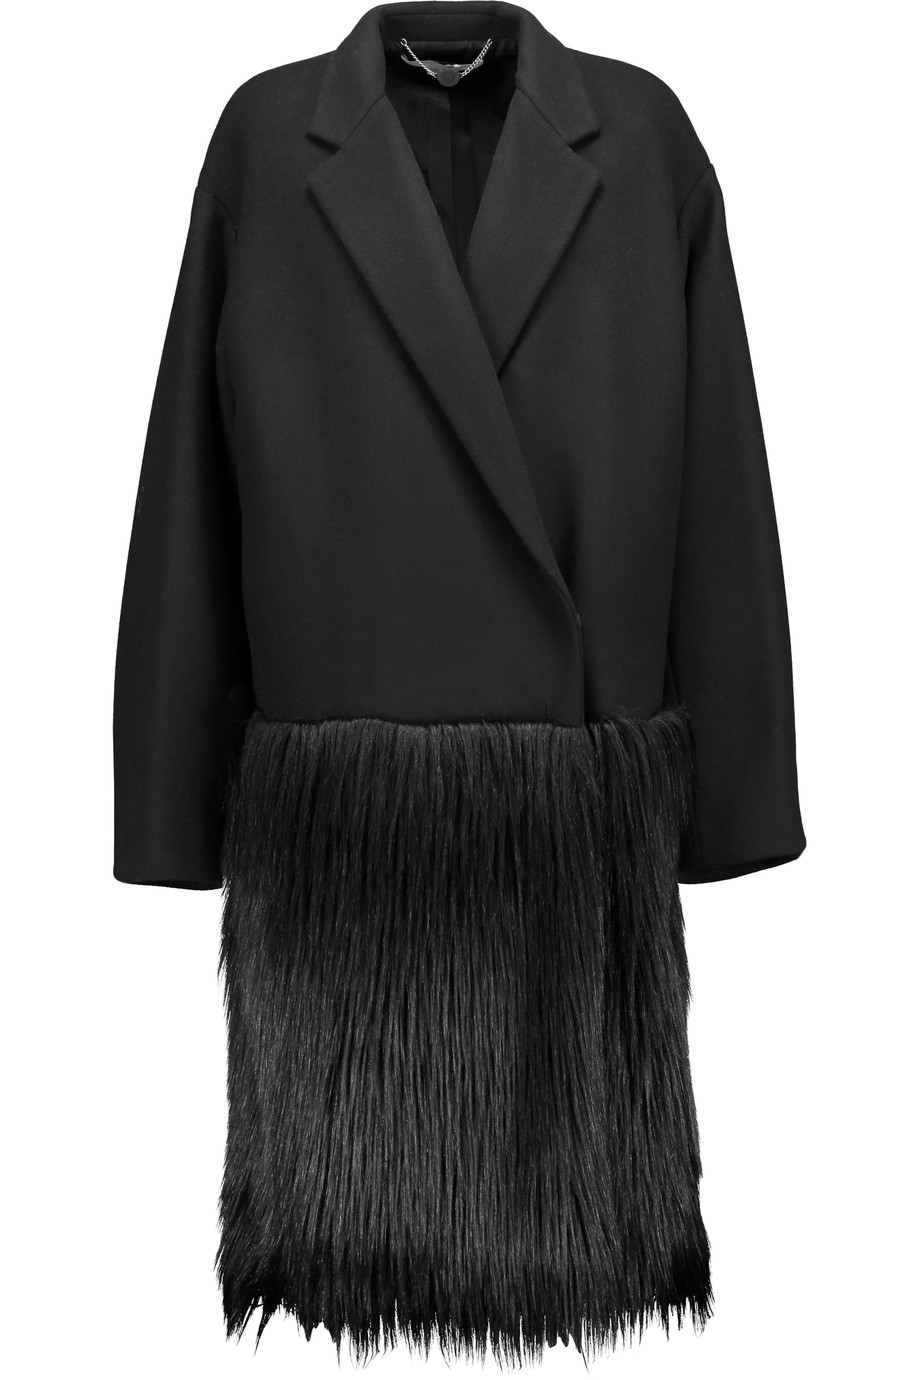 SHOP THE OUTNET